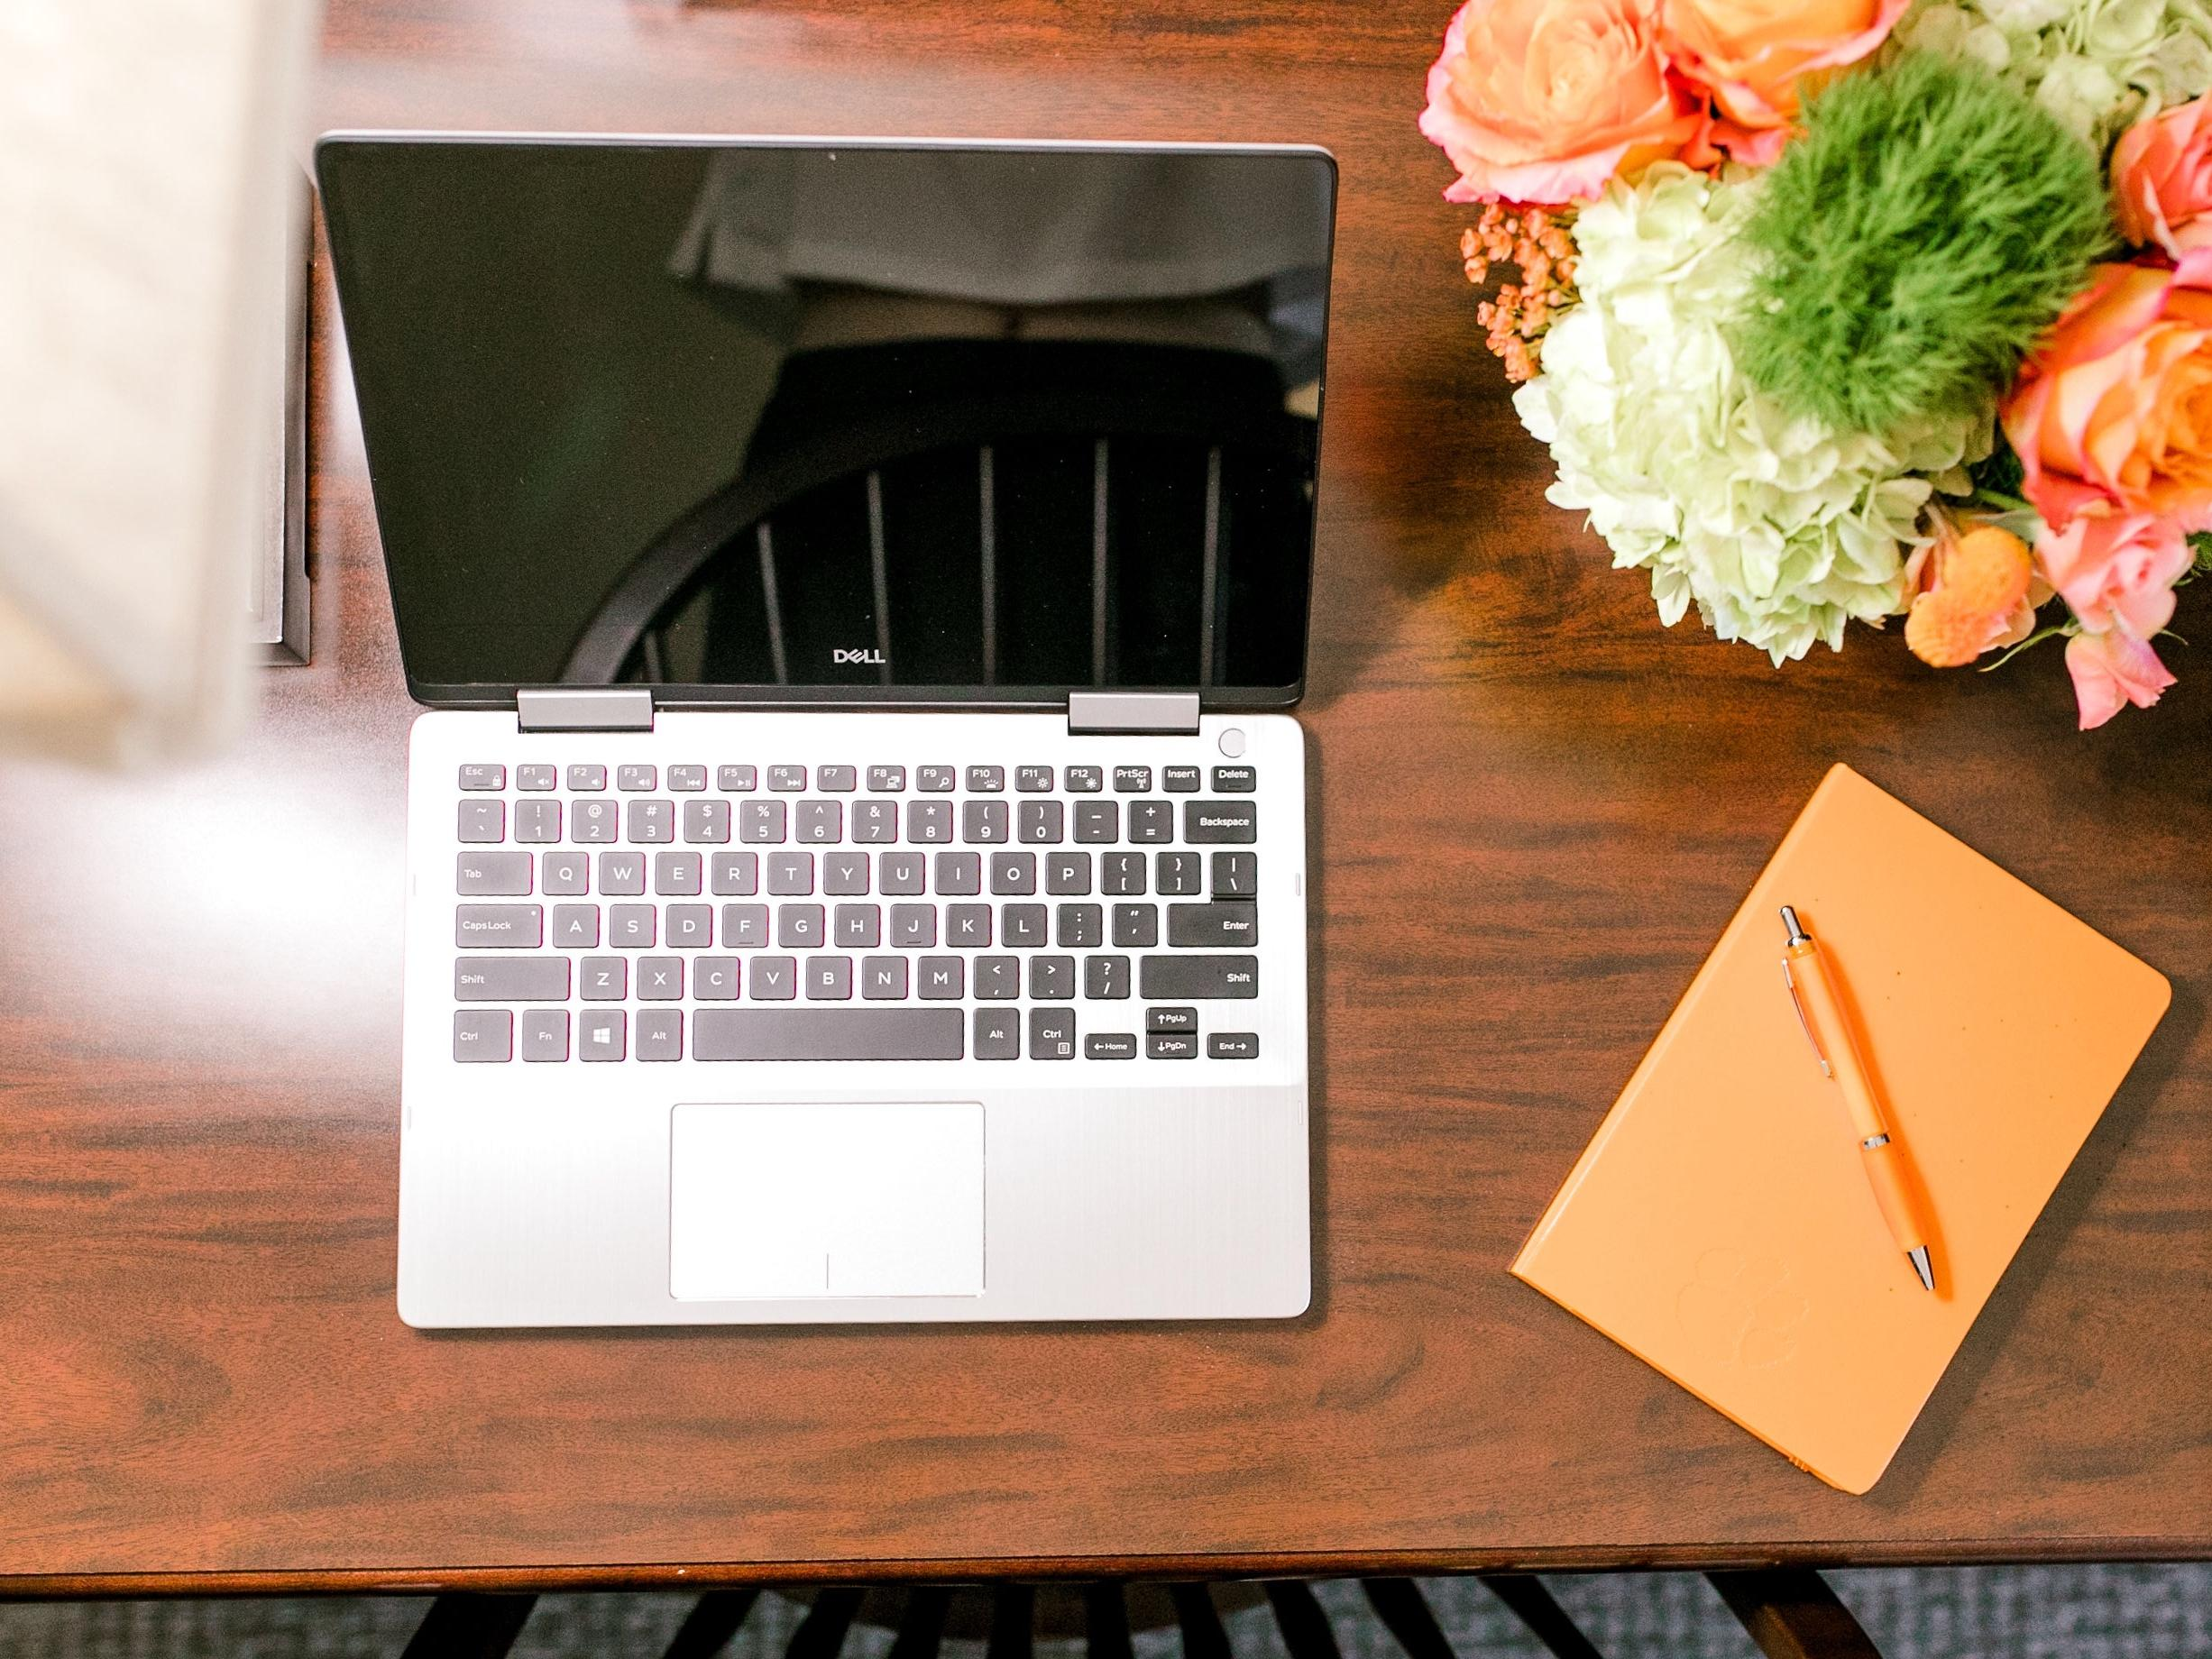 Laptop, notepad with pen, and flowers on tabletop